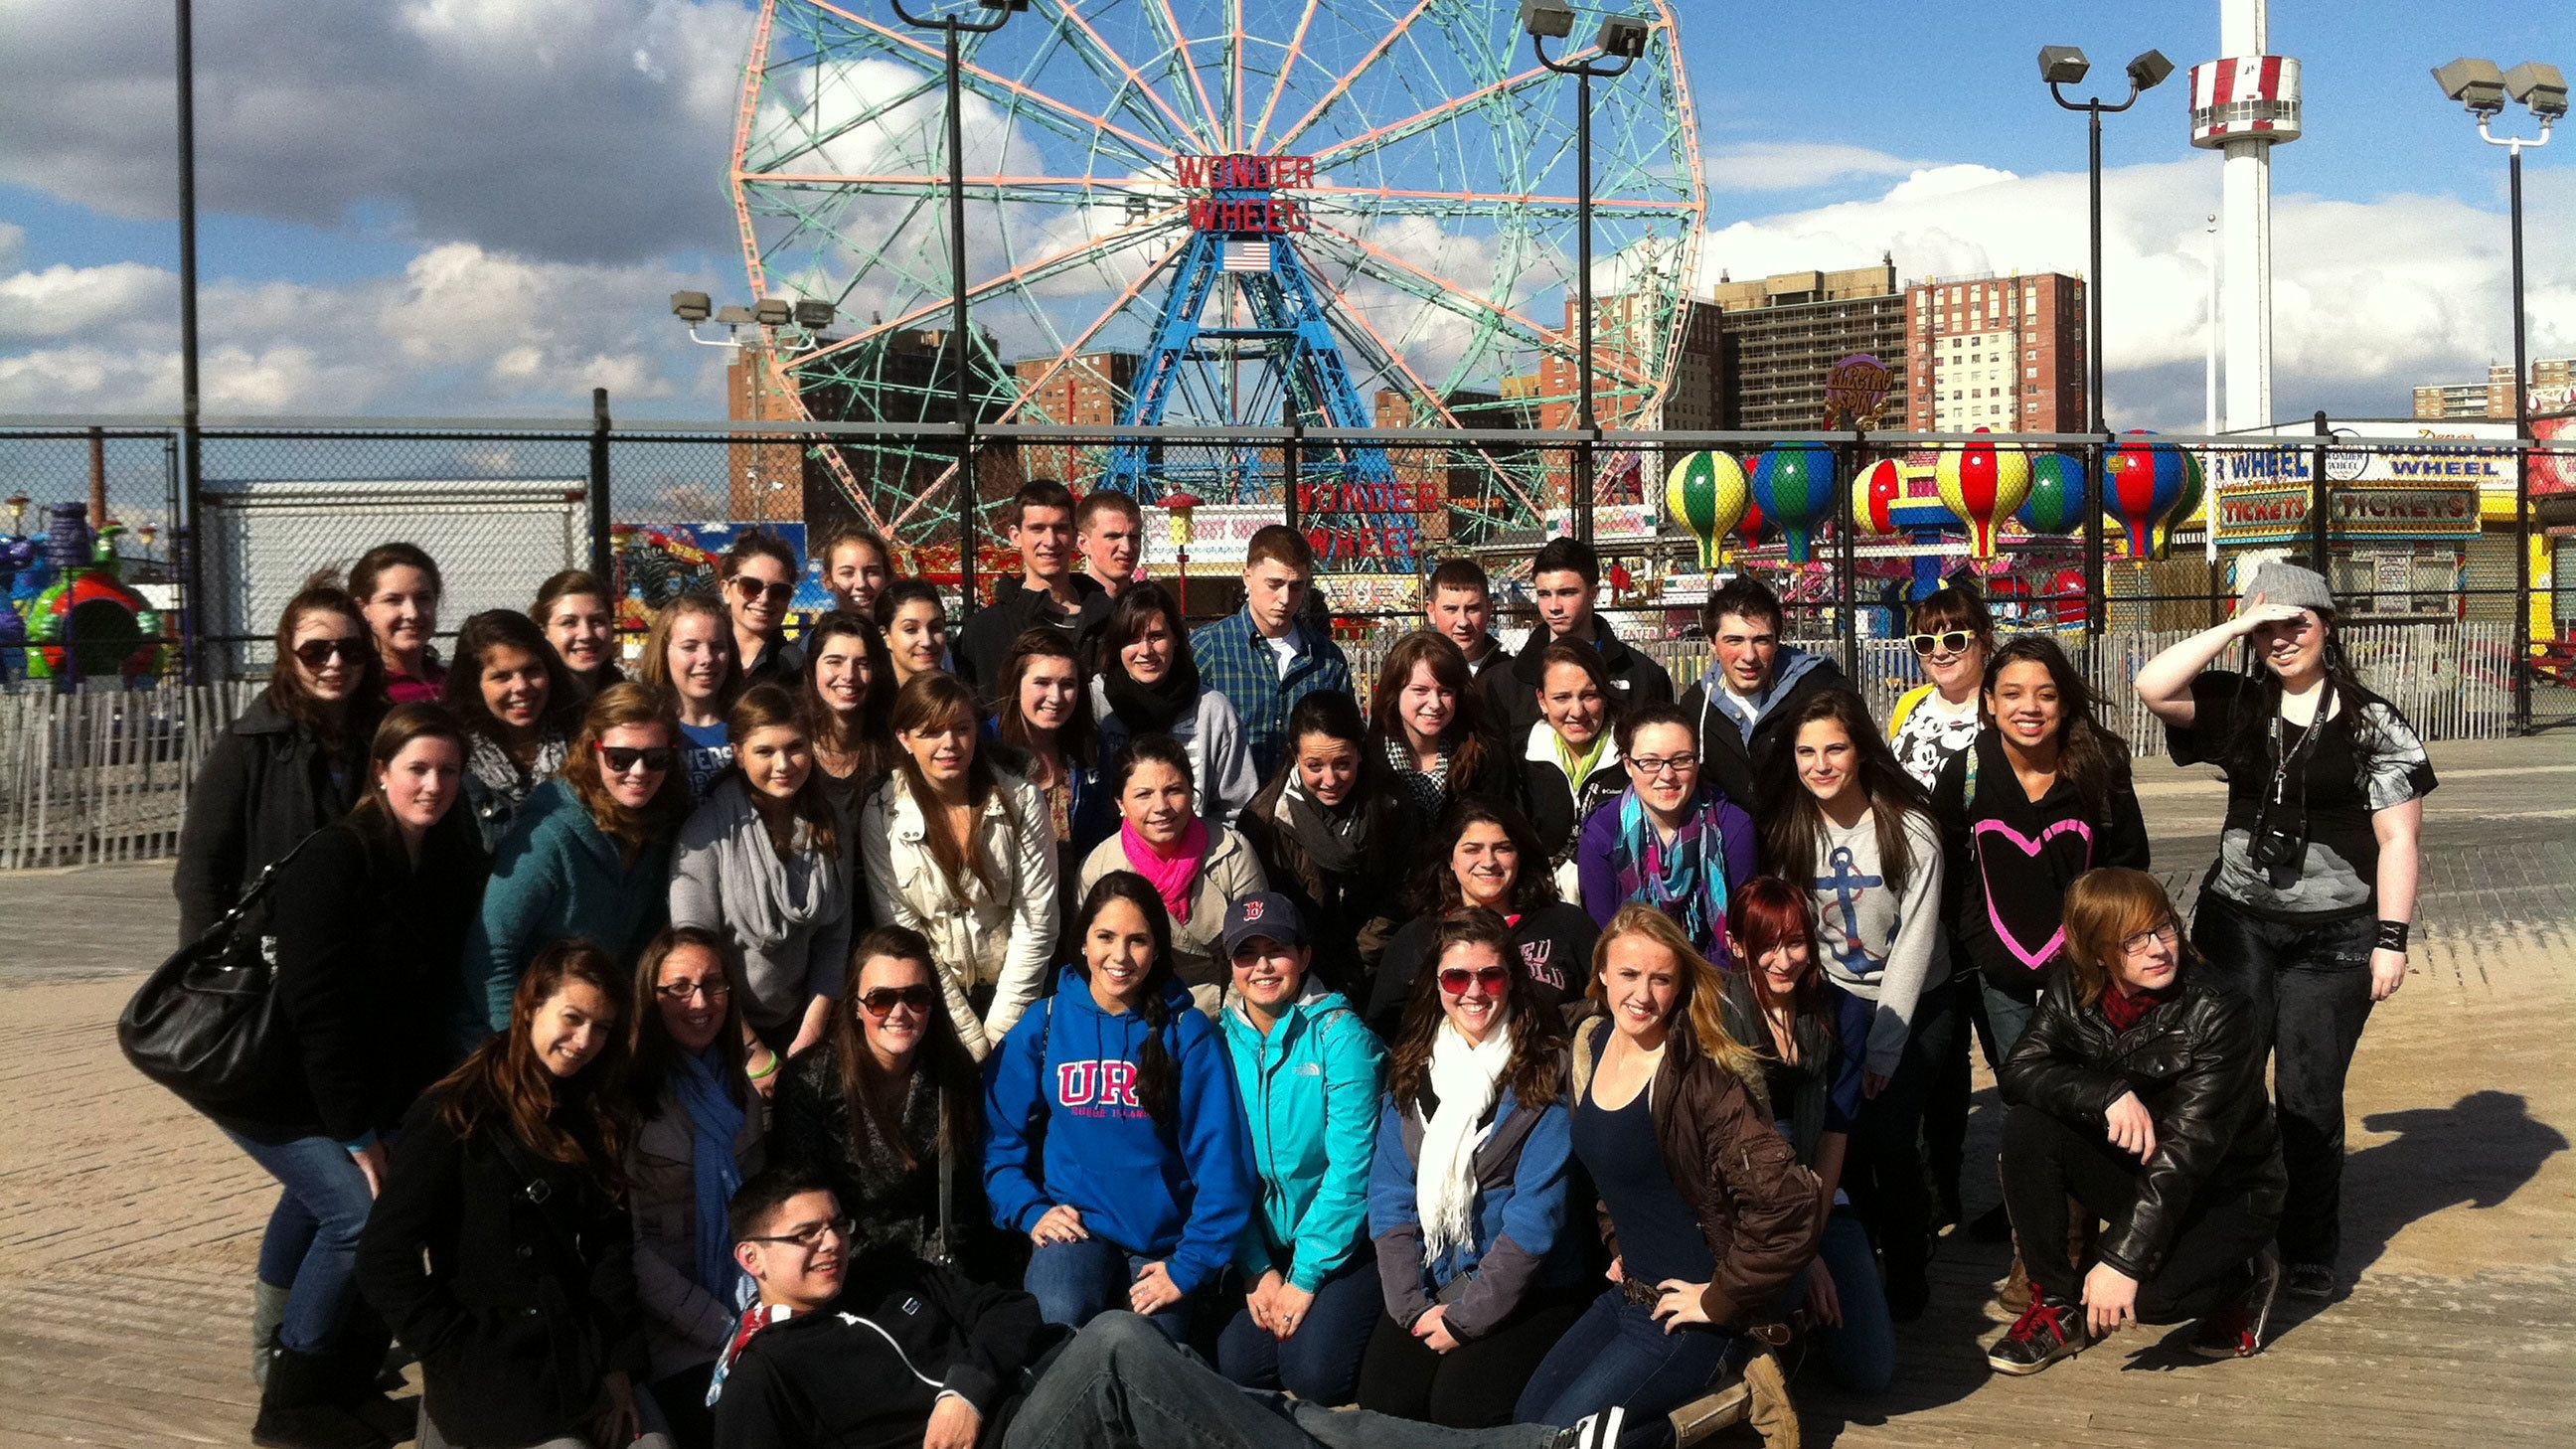 Tour group at Coney Island amusement park in New York